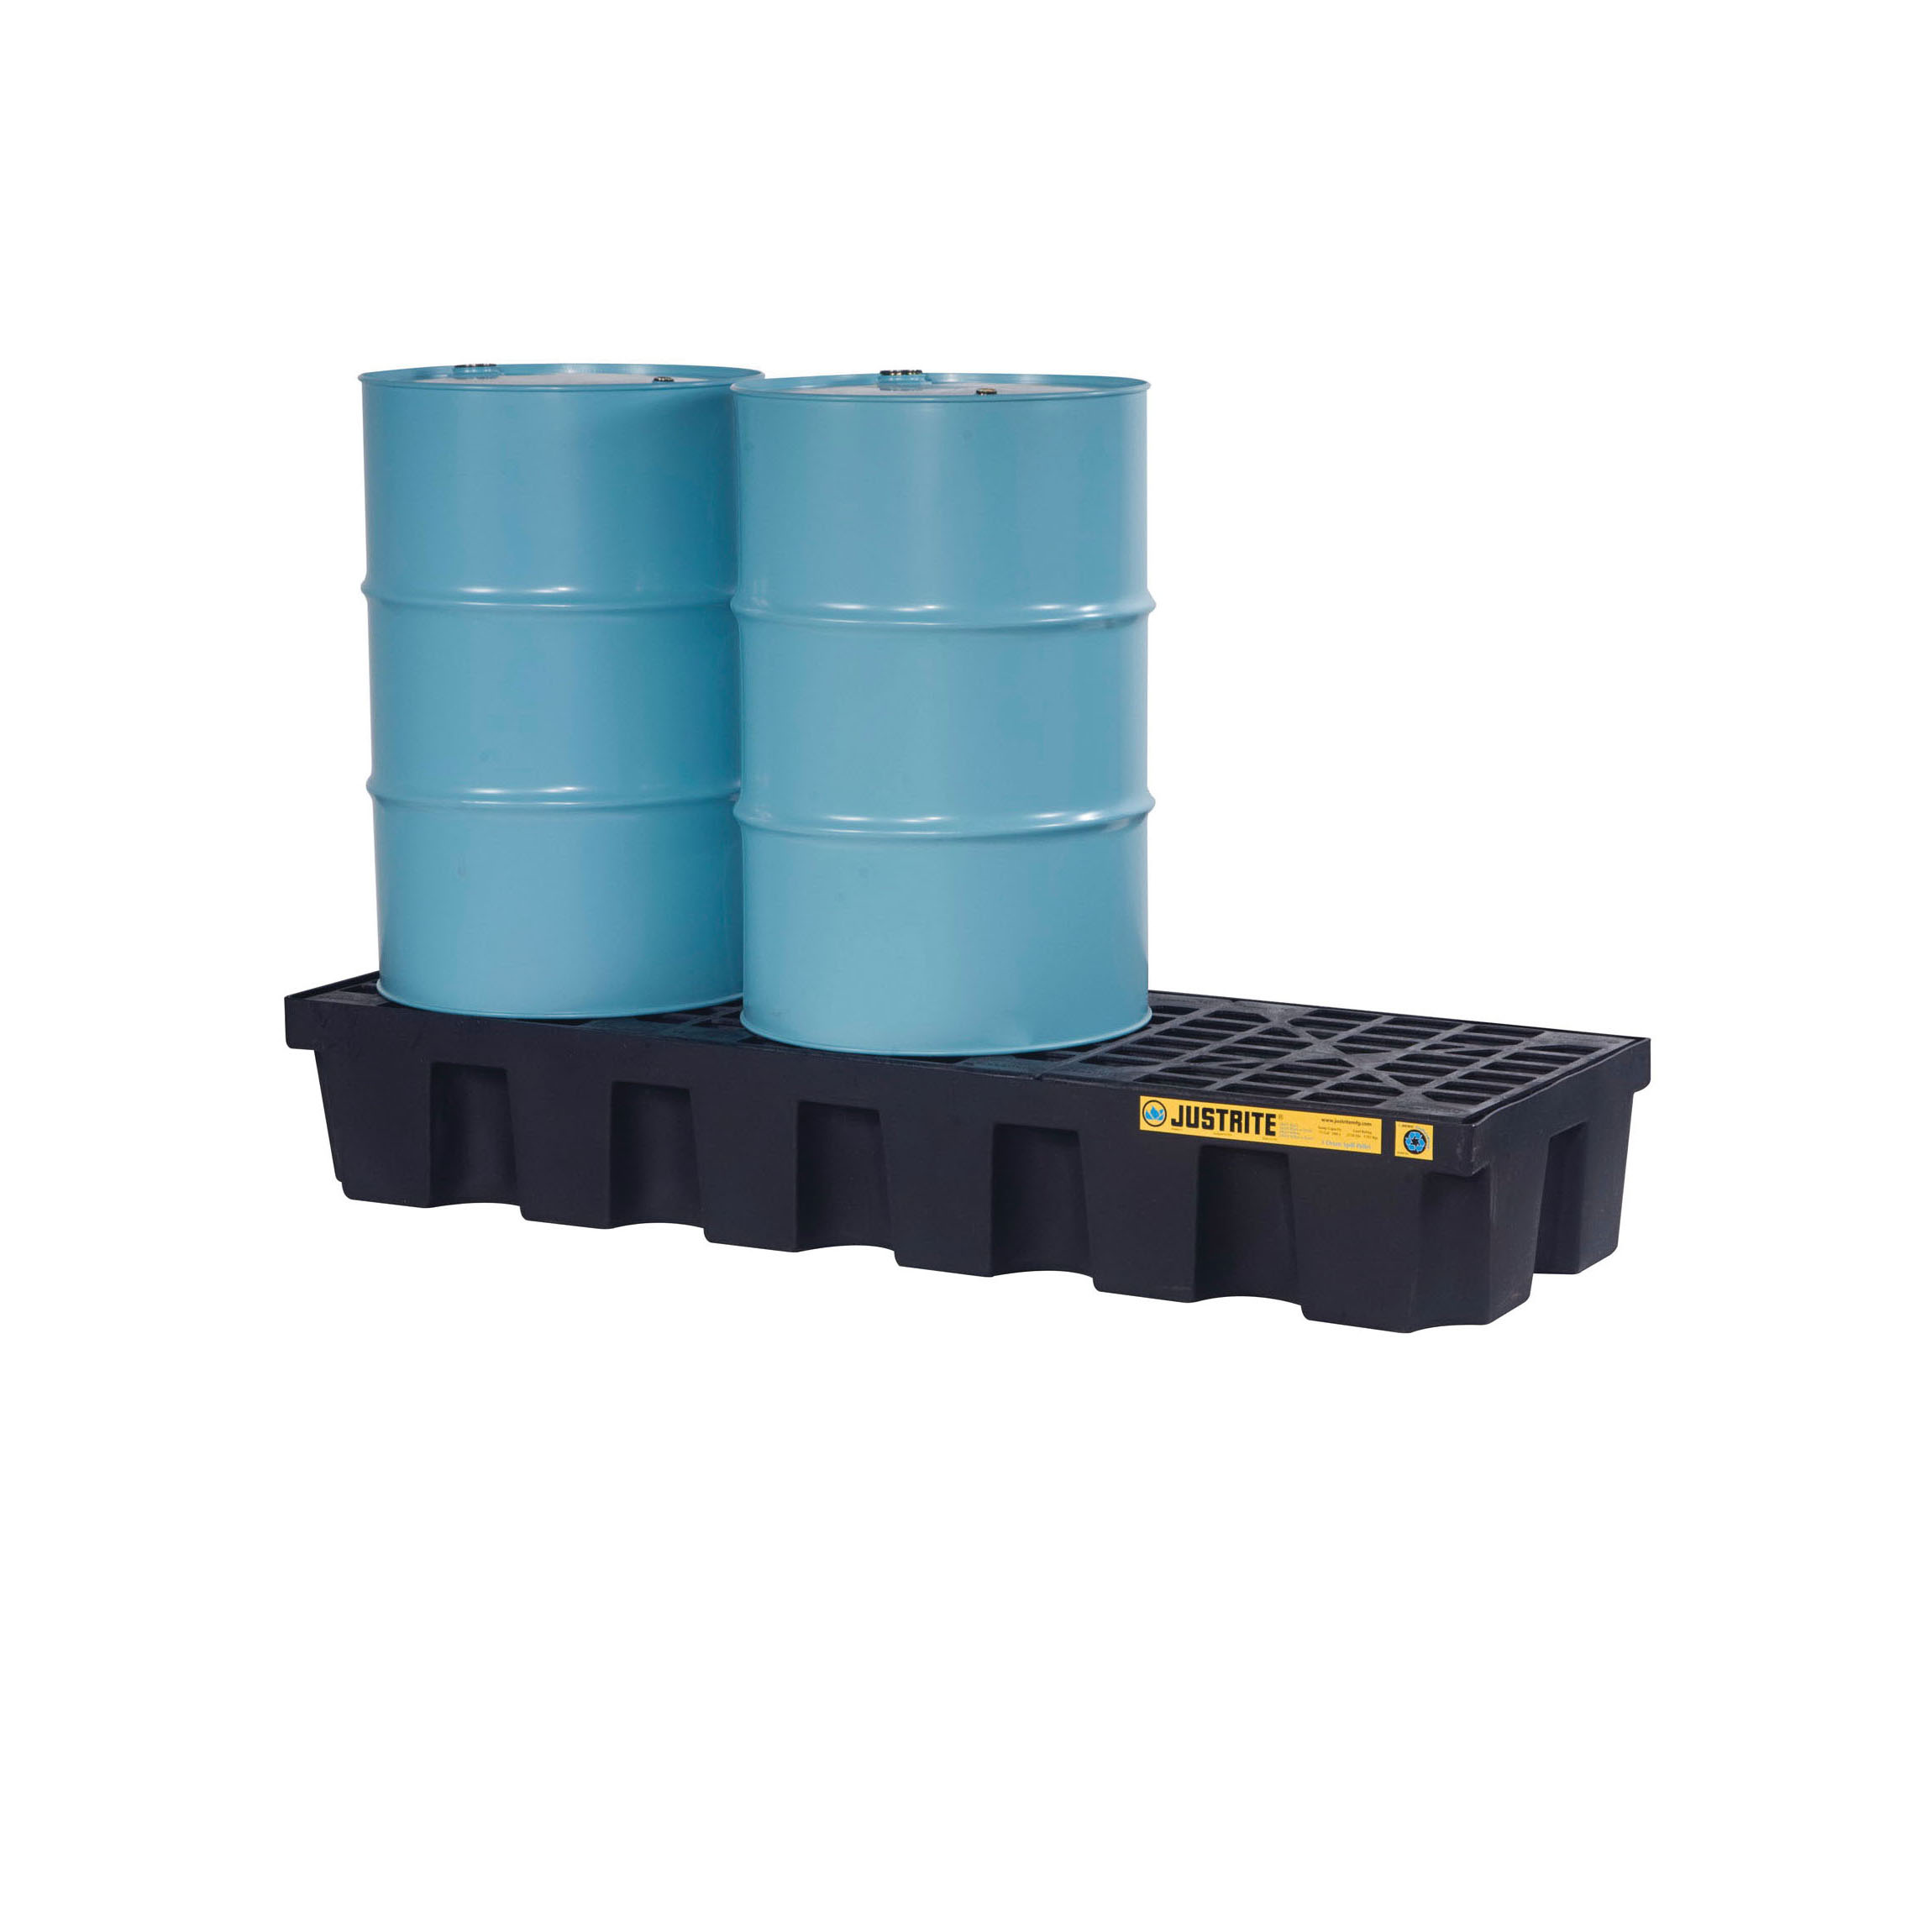 Justrite® 28627 EcoPolyBlend™ Spill Control Pallet, 3 Drums, 75 gal Spill, 3750 lb Load, 100% Recycled Polyethylene